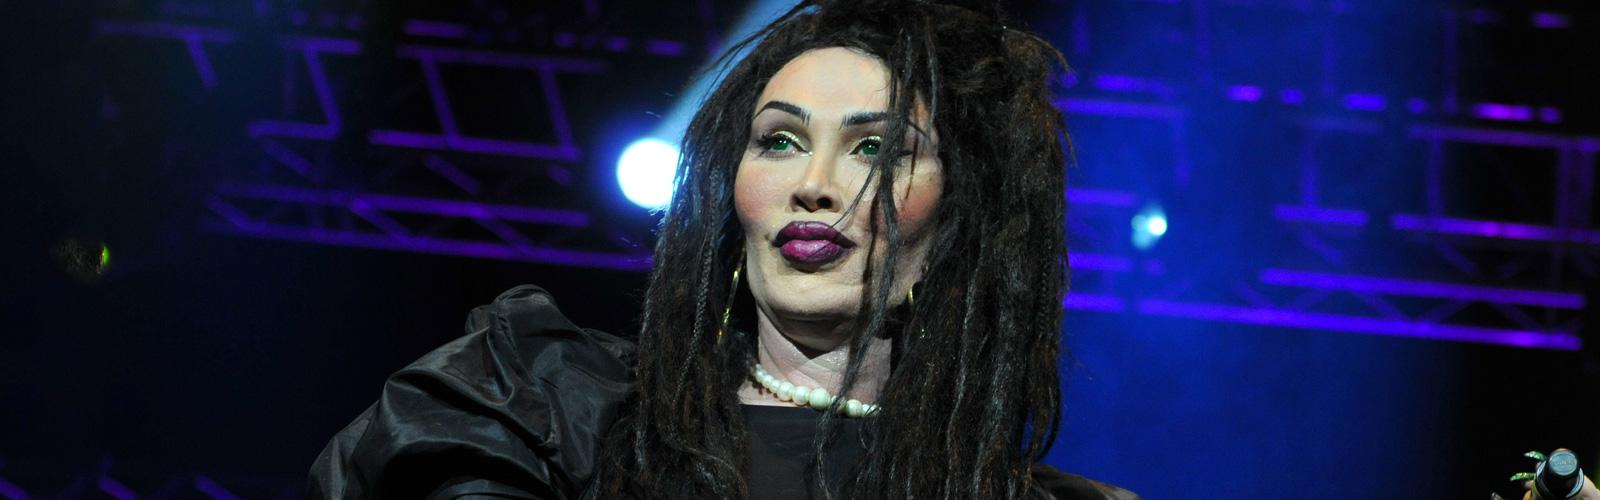 LAST THOUGHTS ON PETE BURNS